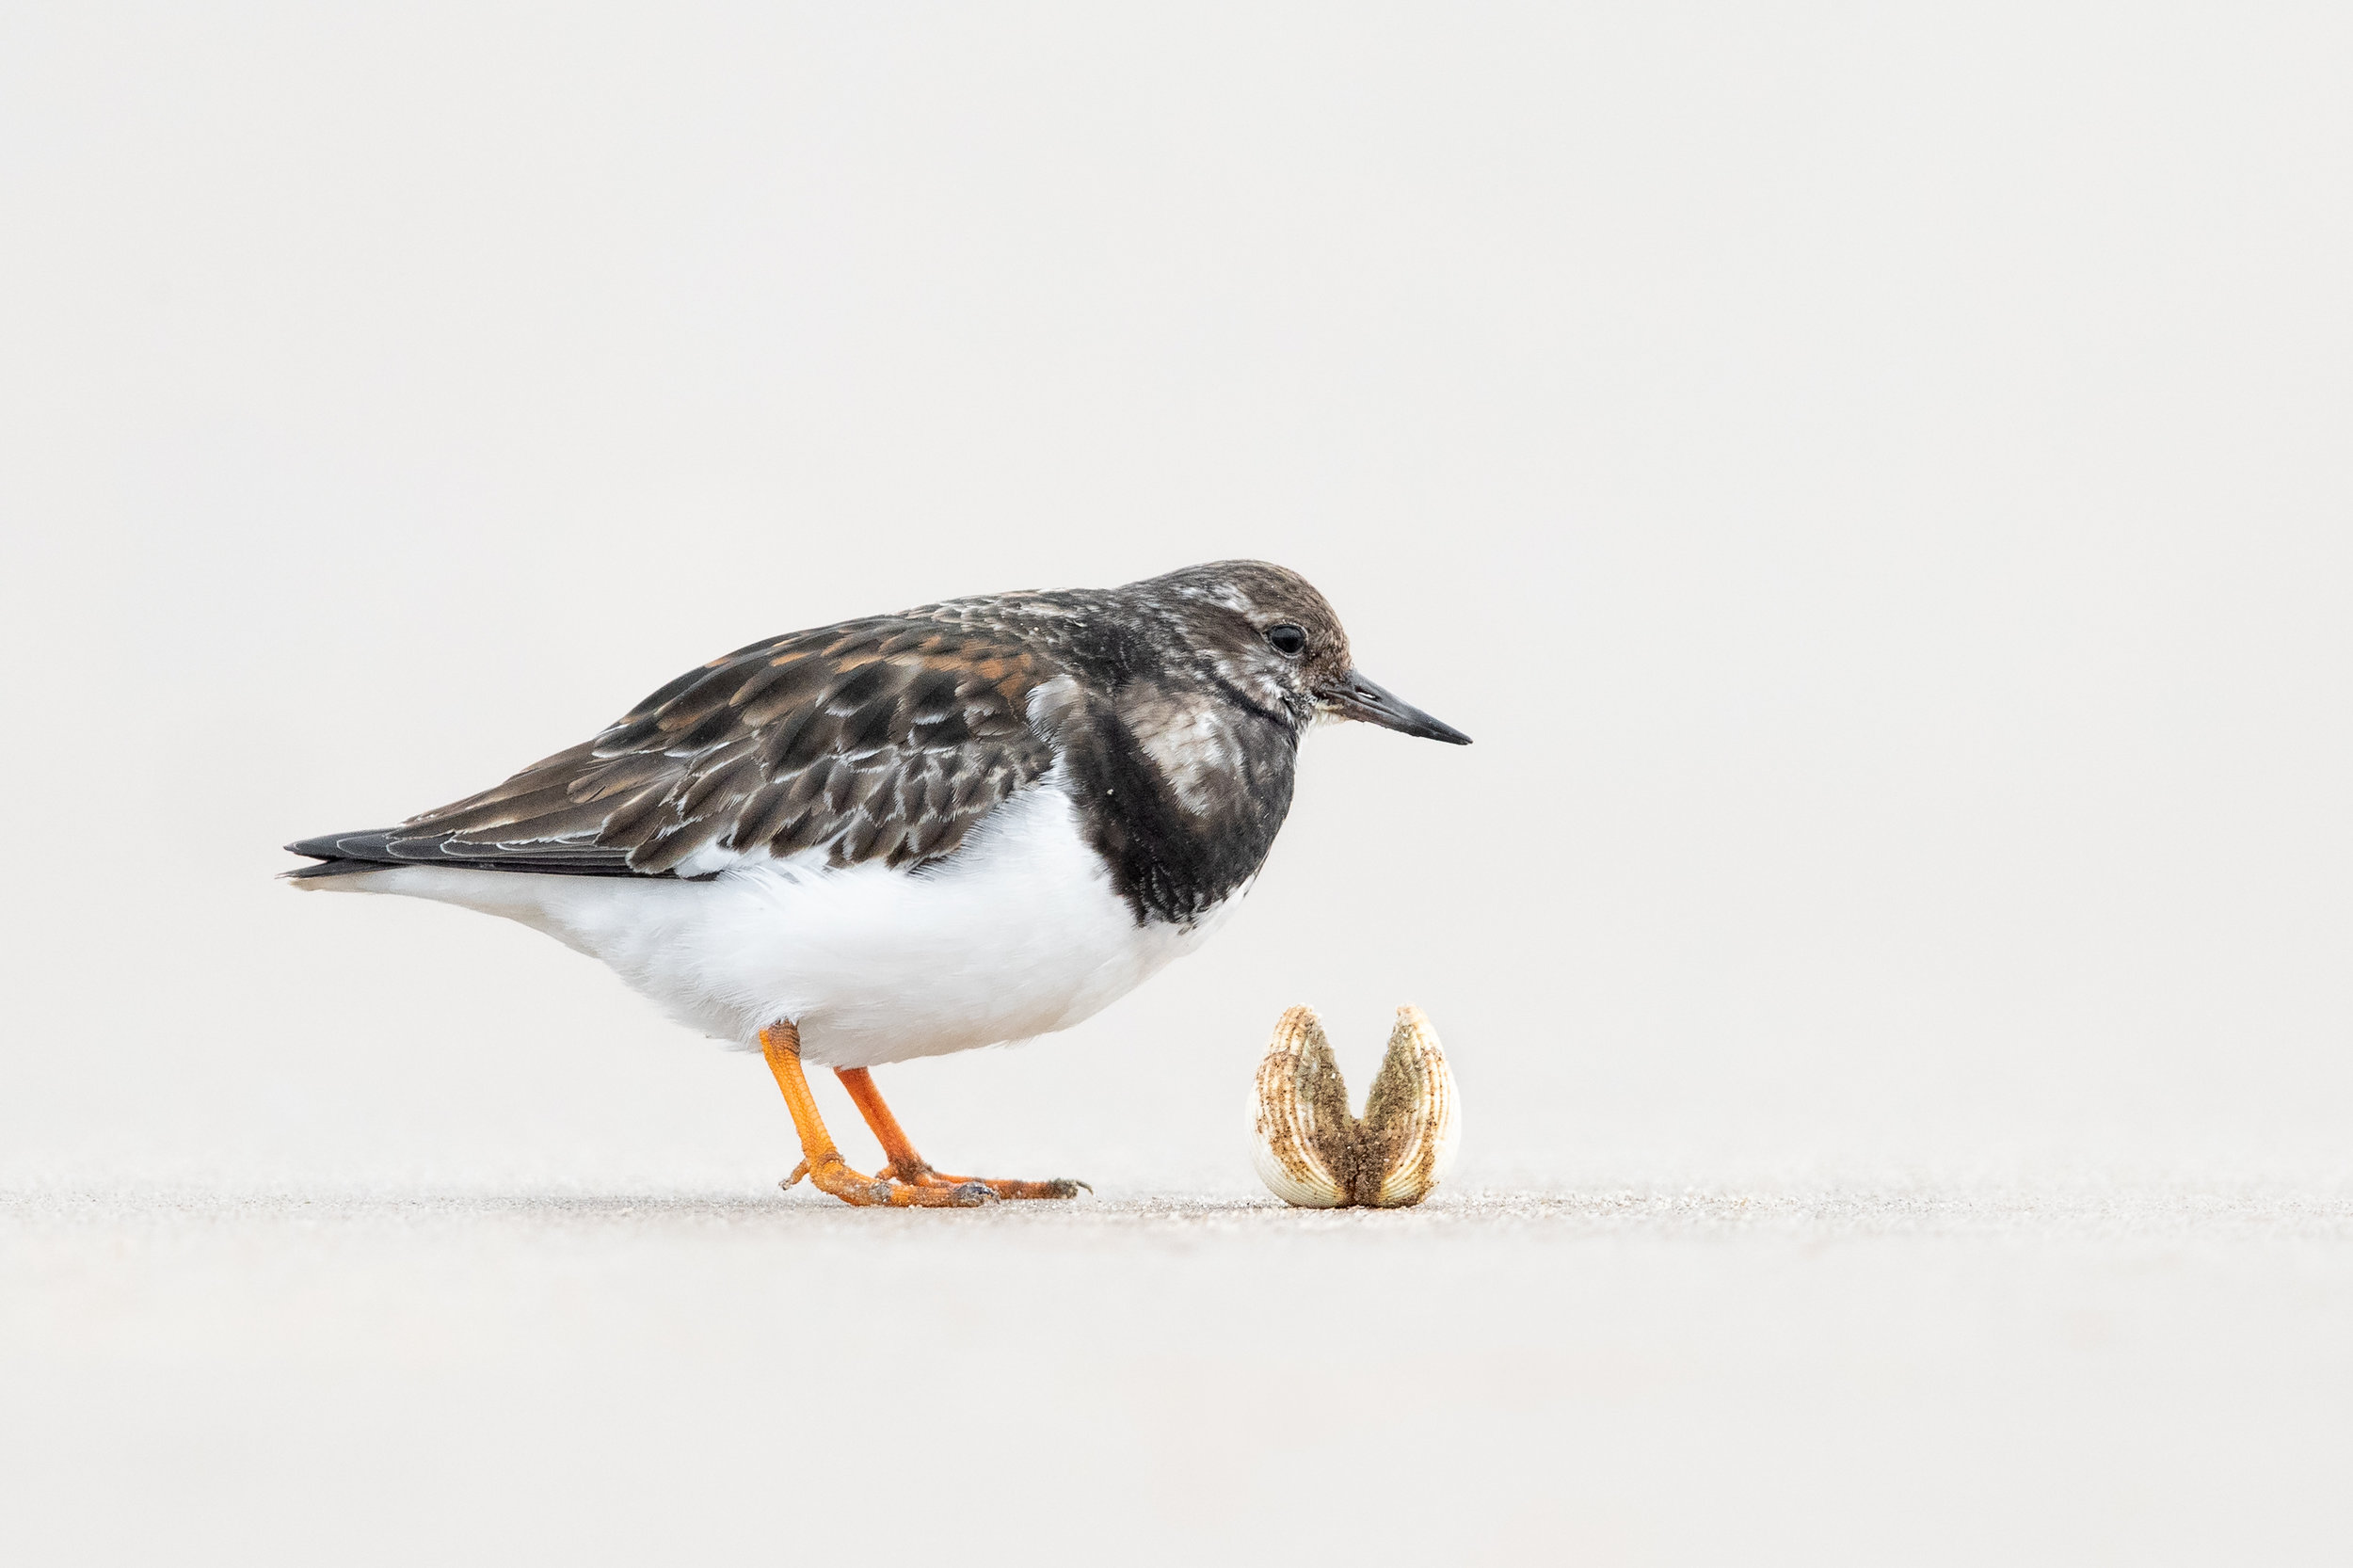 The Turnstone and the Cockle